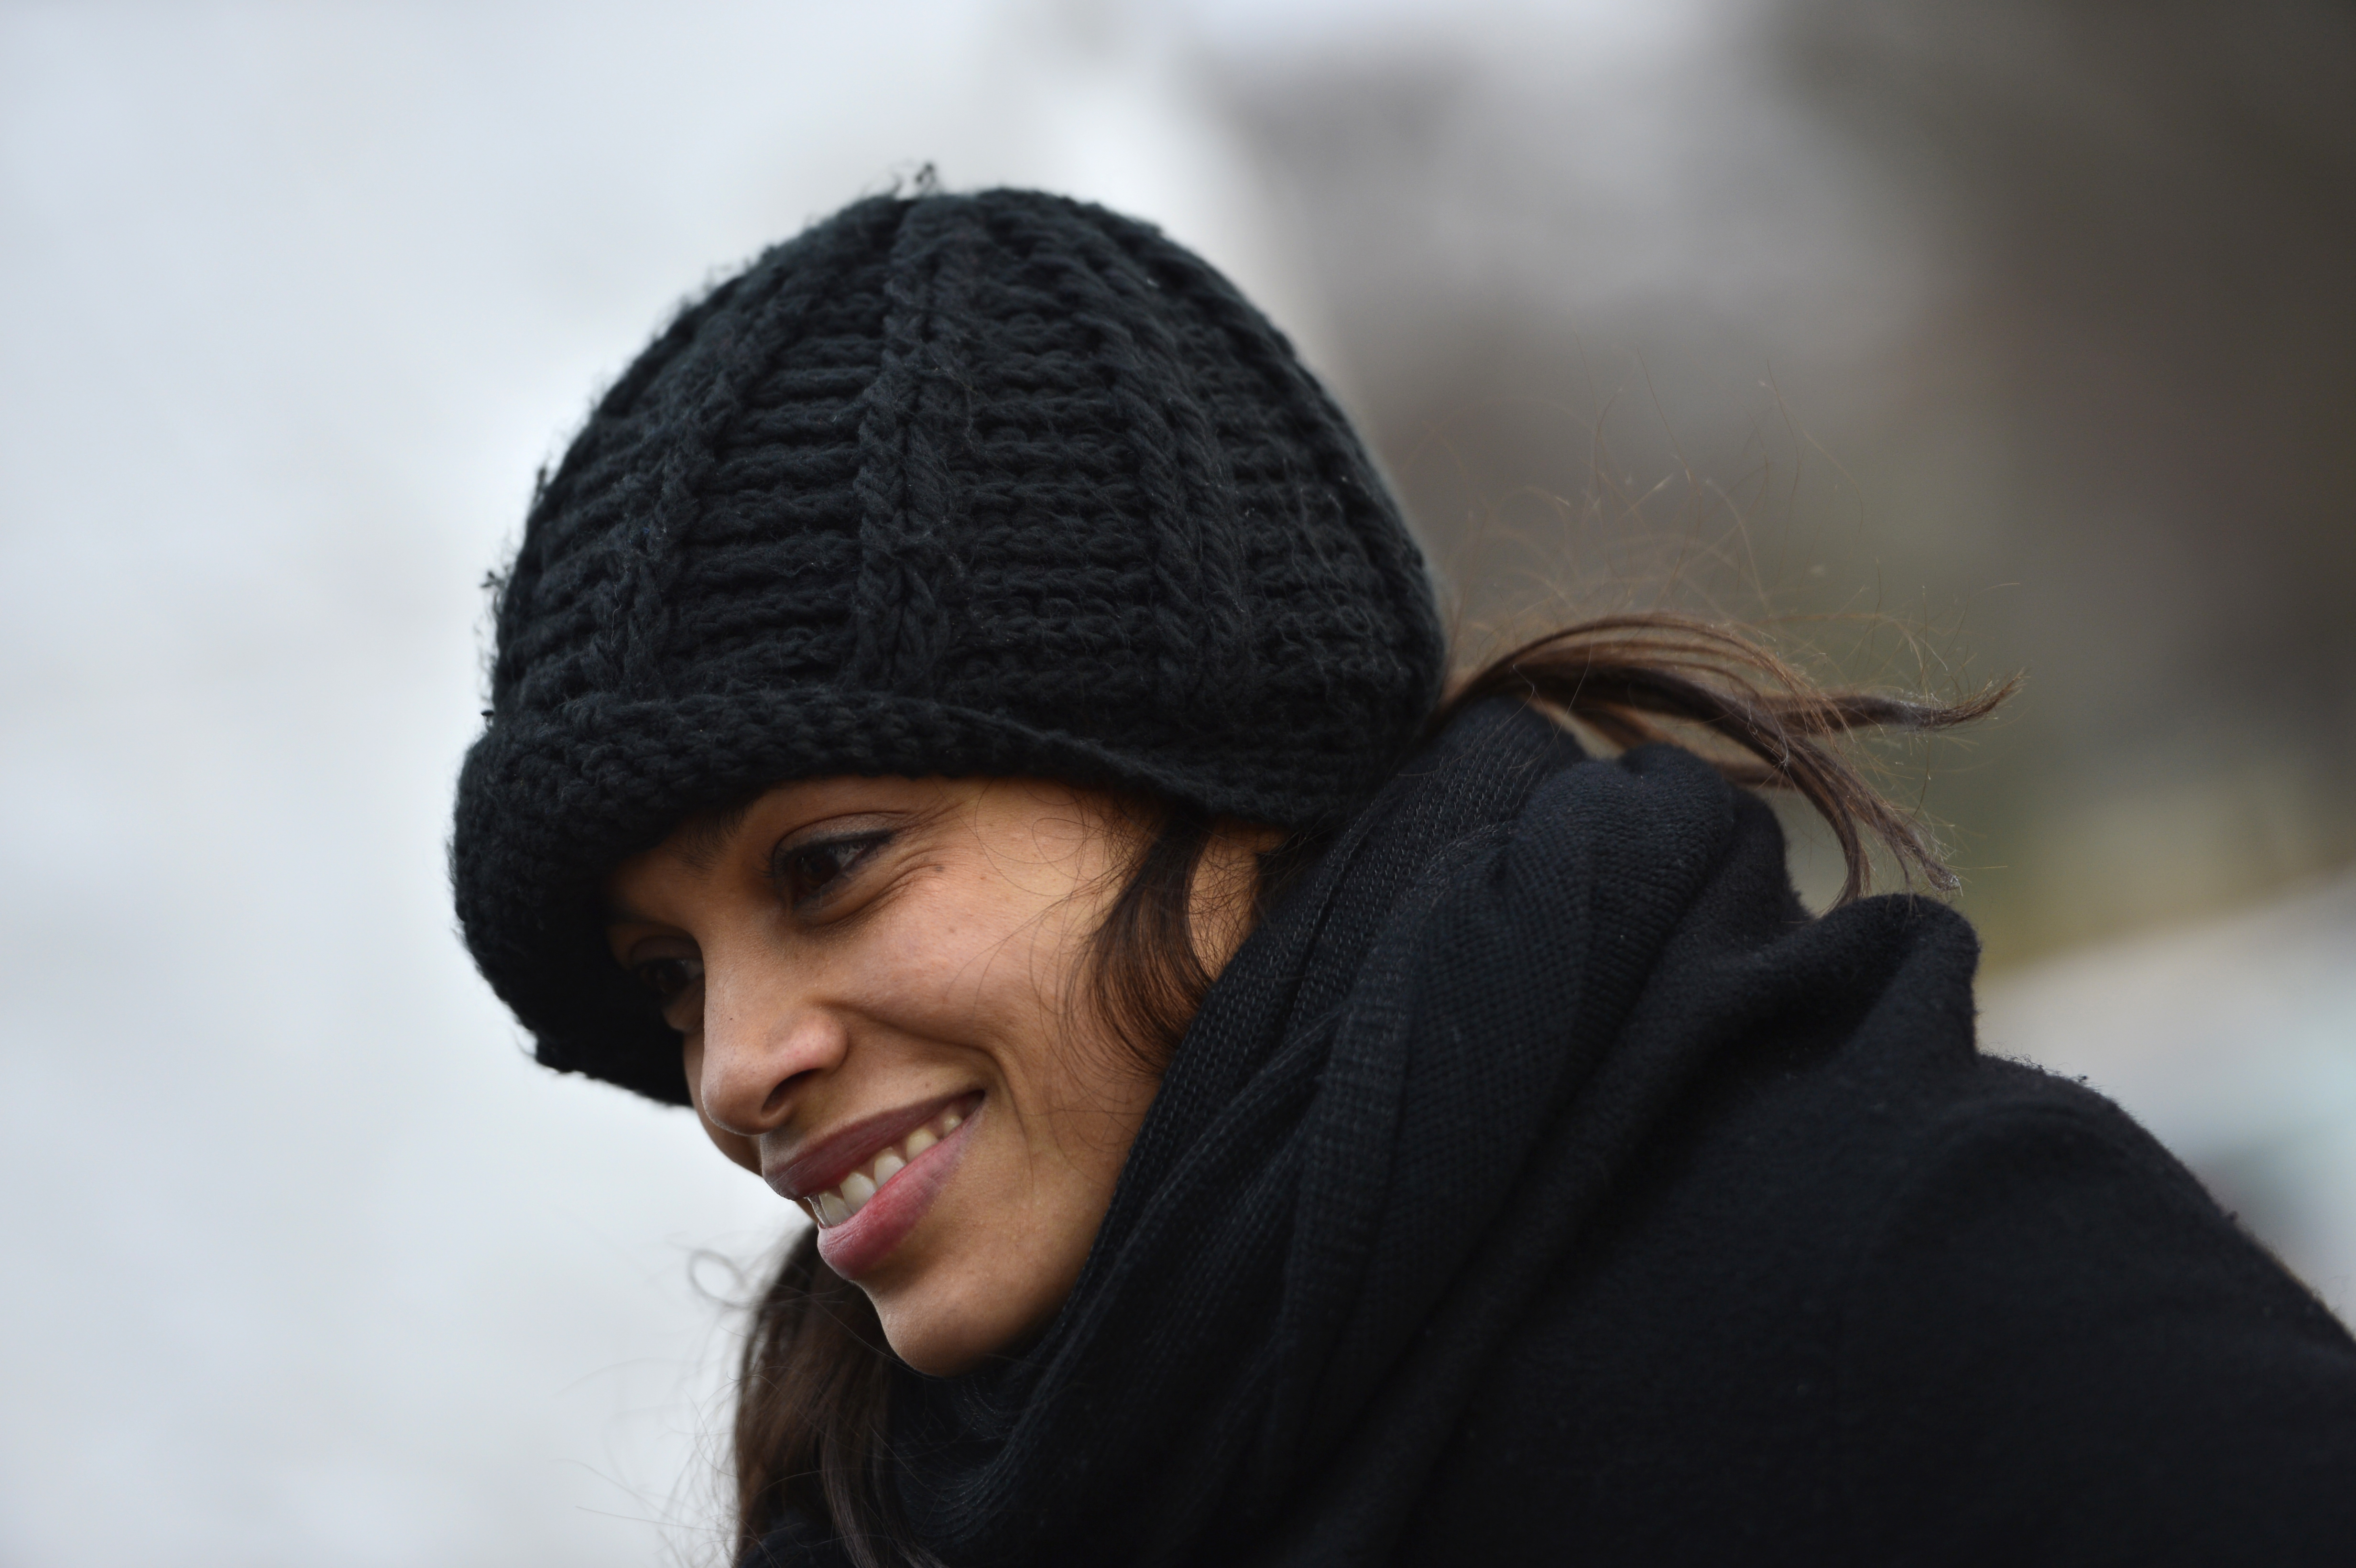 Actress and activist Rosario Dawson was among the crowd of several thousand people who gathered on the National Mall for the